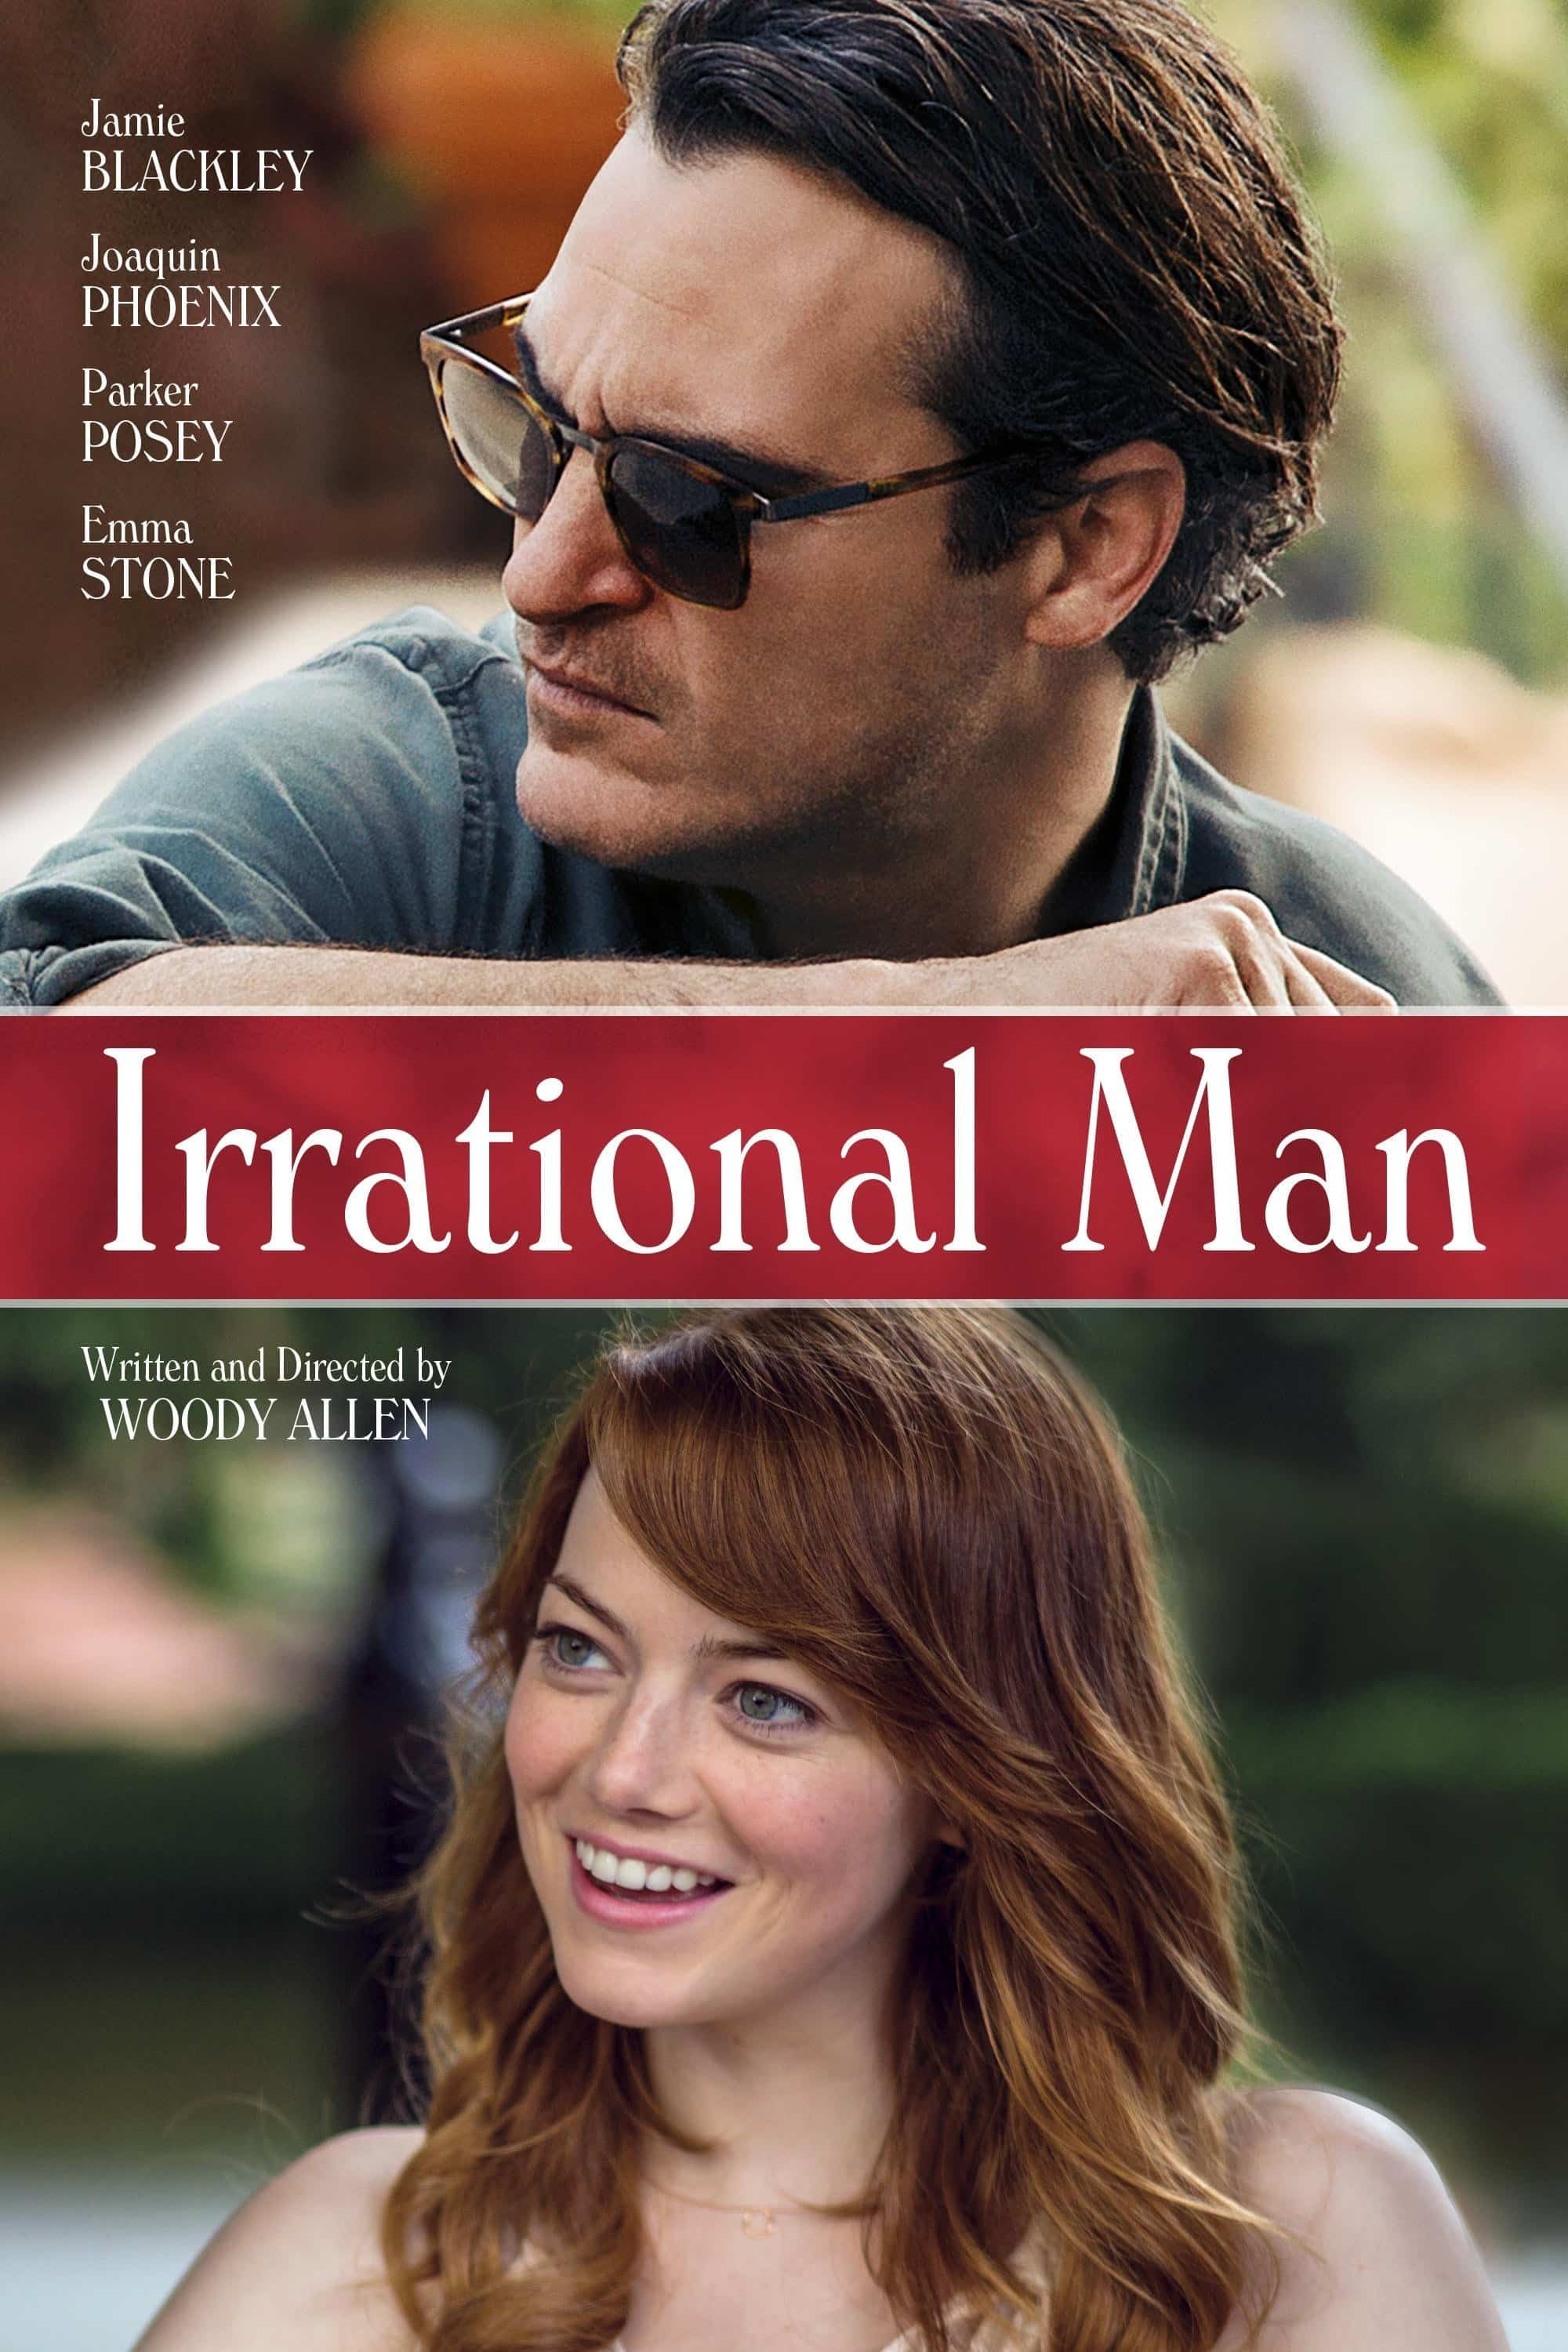 'Irrational Man' la más reciente marca registrada de Woody Allen